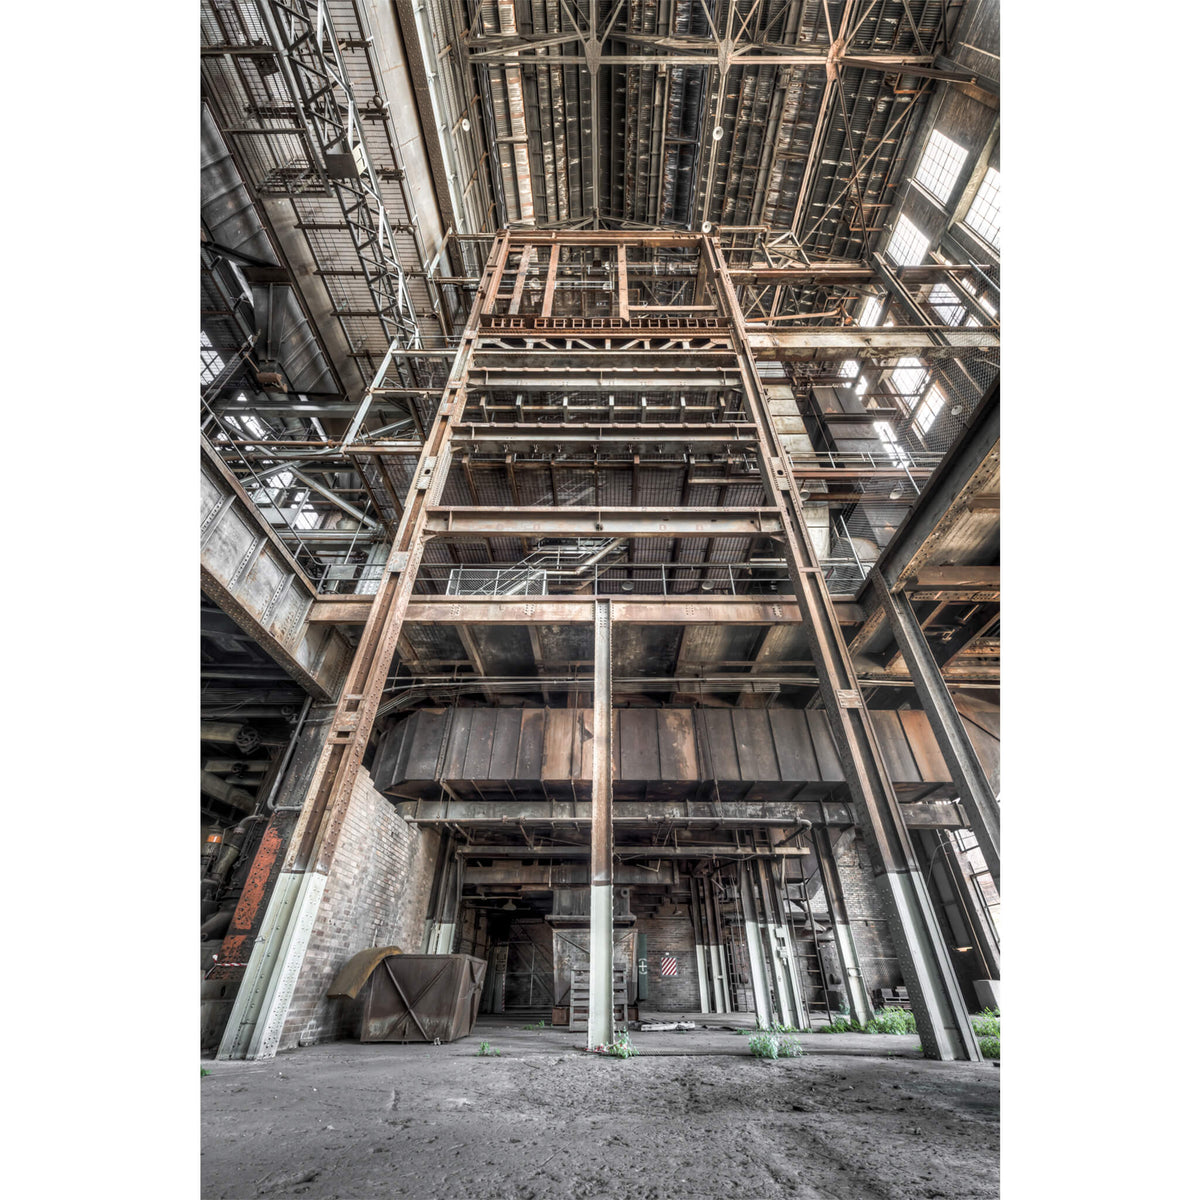 Boiler House Basement To Ceiling | White Bay Power Station Fine Art Print - Lost Collective Shop